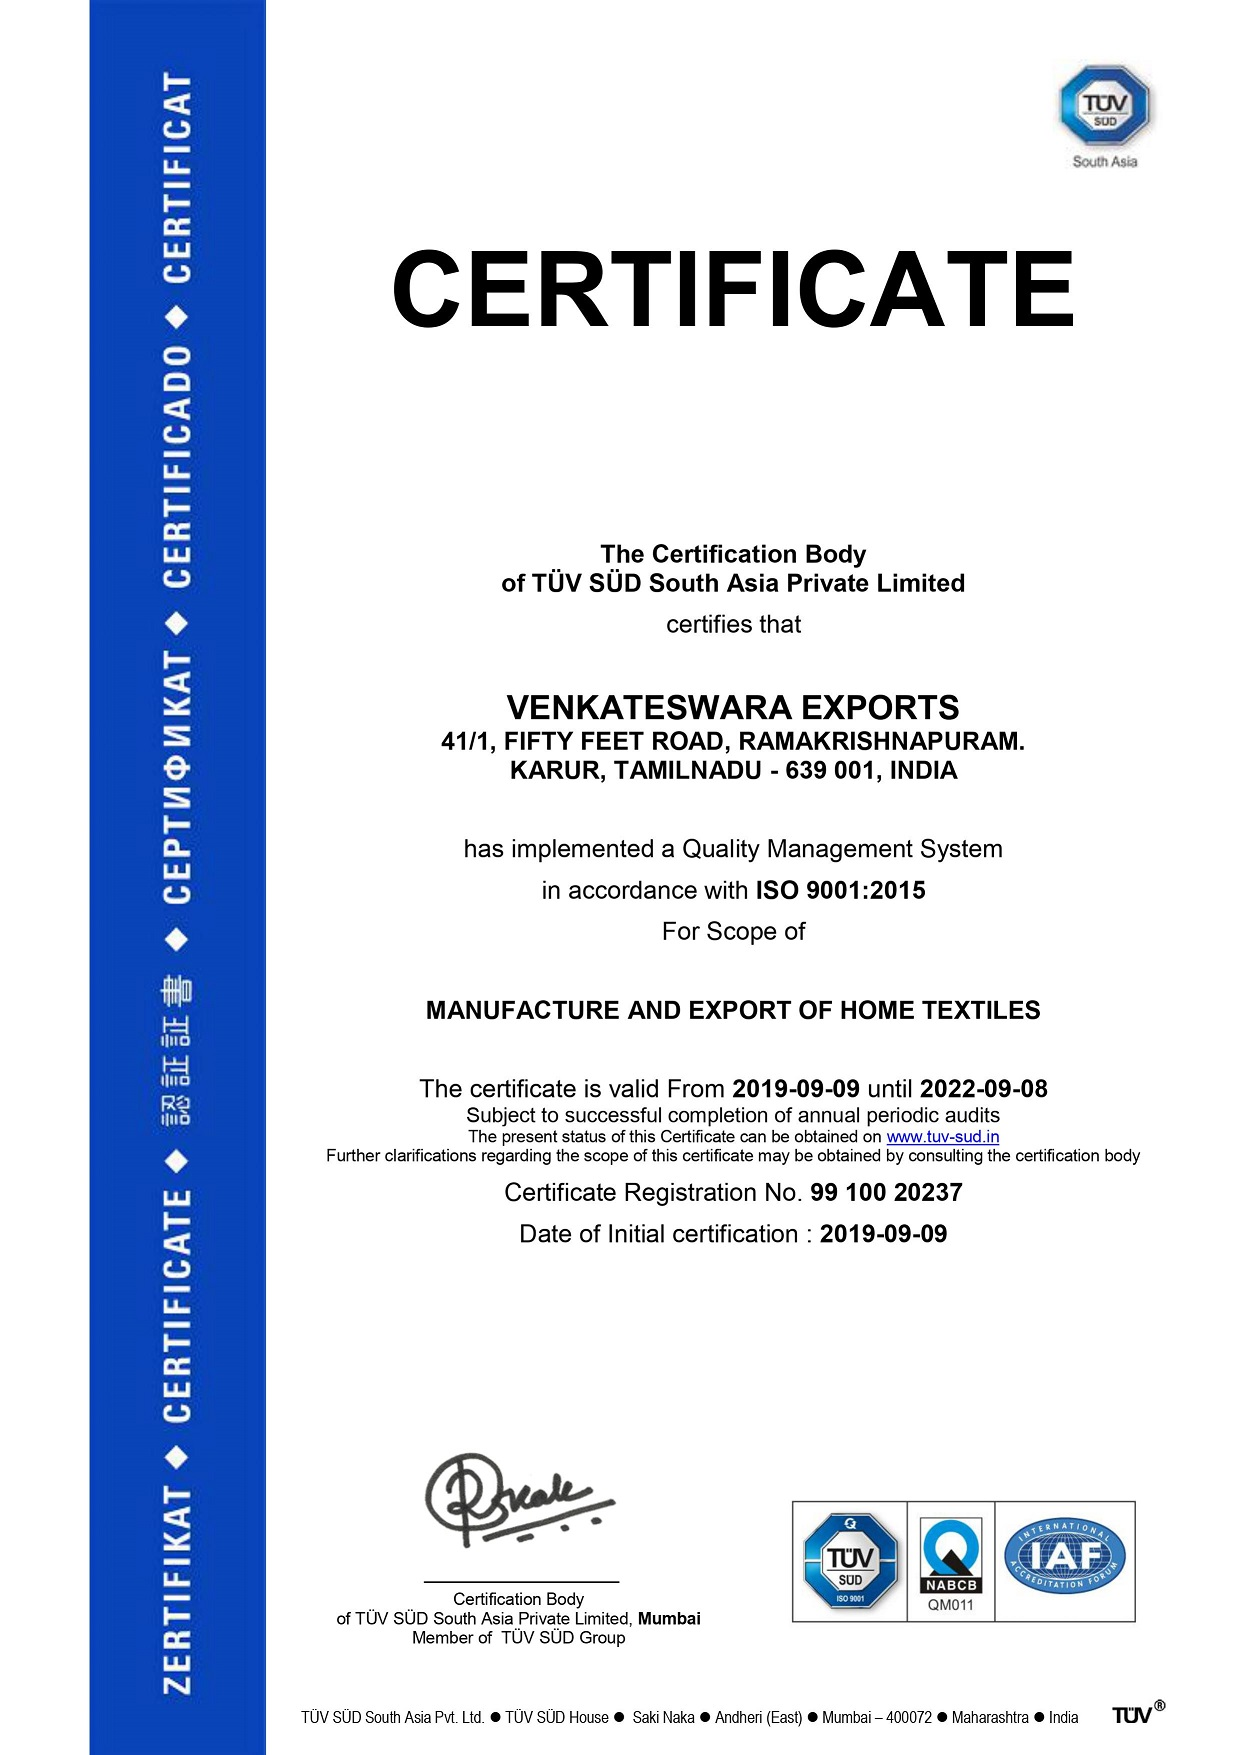 ISO 9001:2008 certified company by TUV SUD